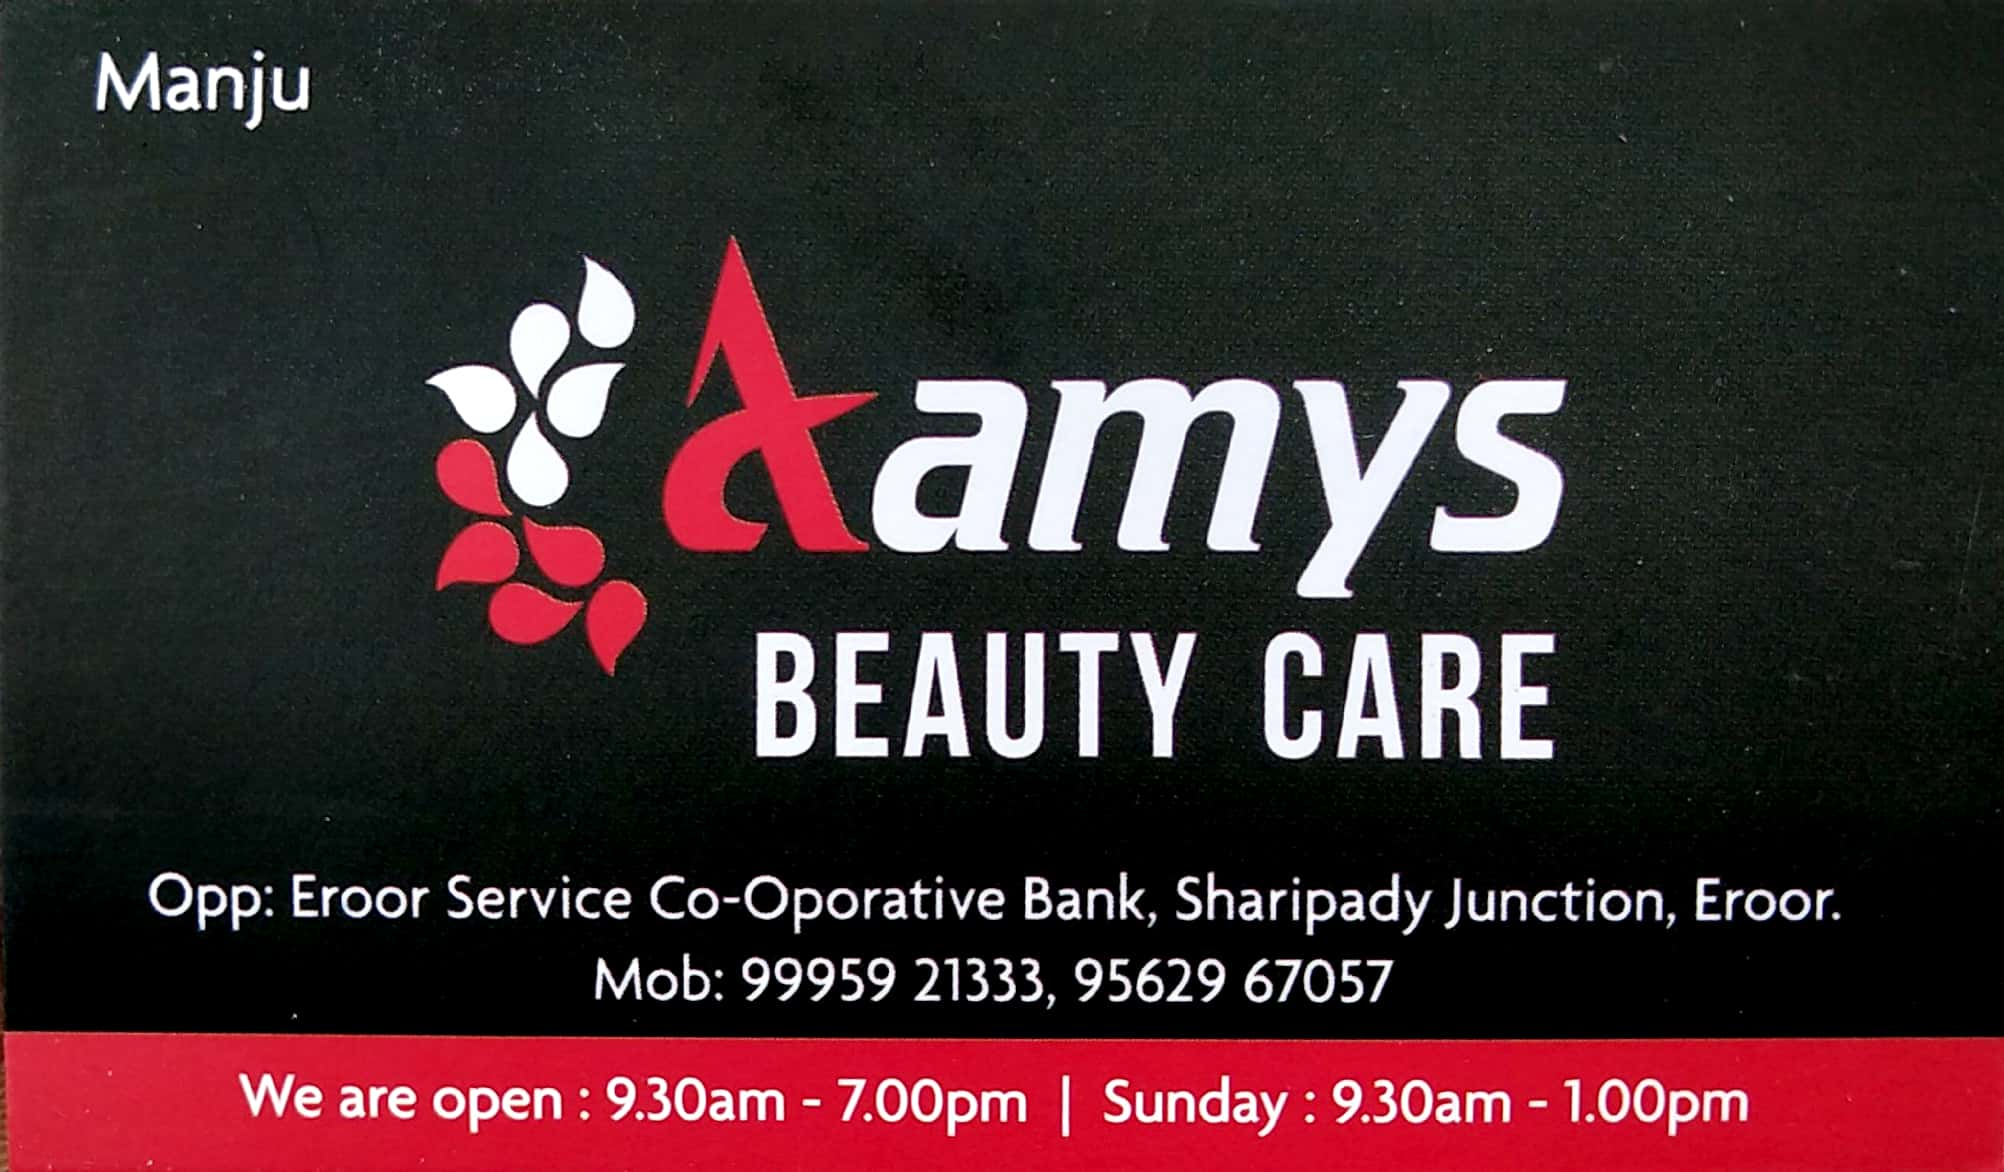 Aamys BEAUTY CARE, BEAUTY PARLOUR,  service in Thrippunithura, Ernakulam